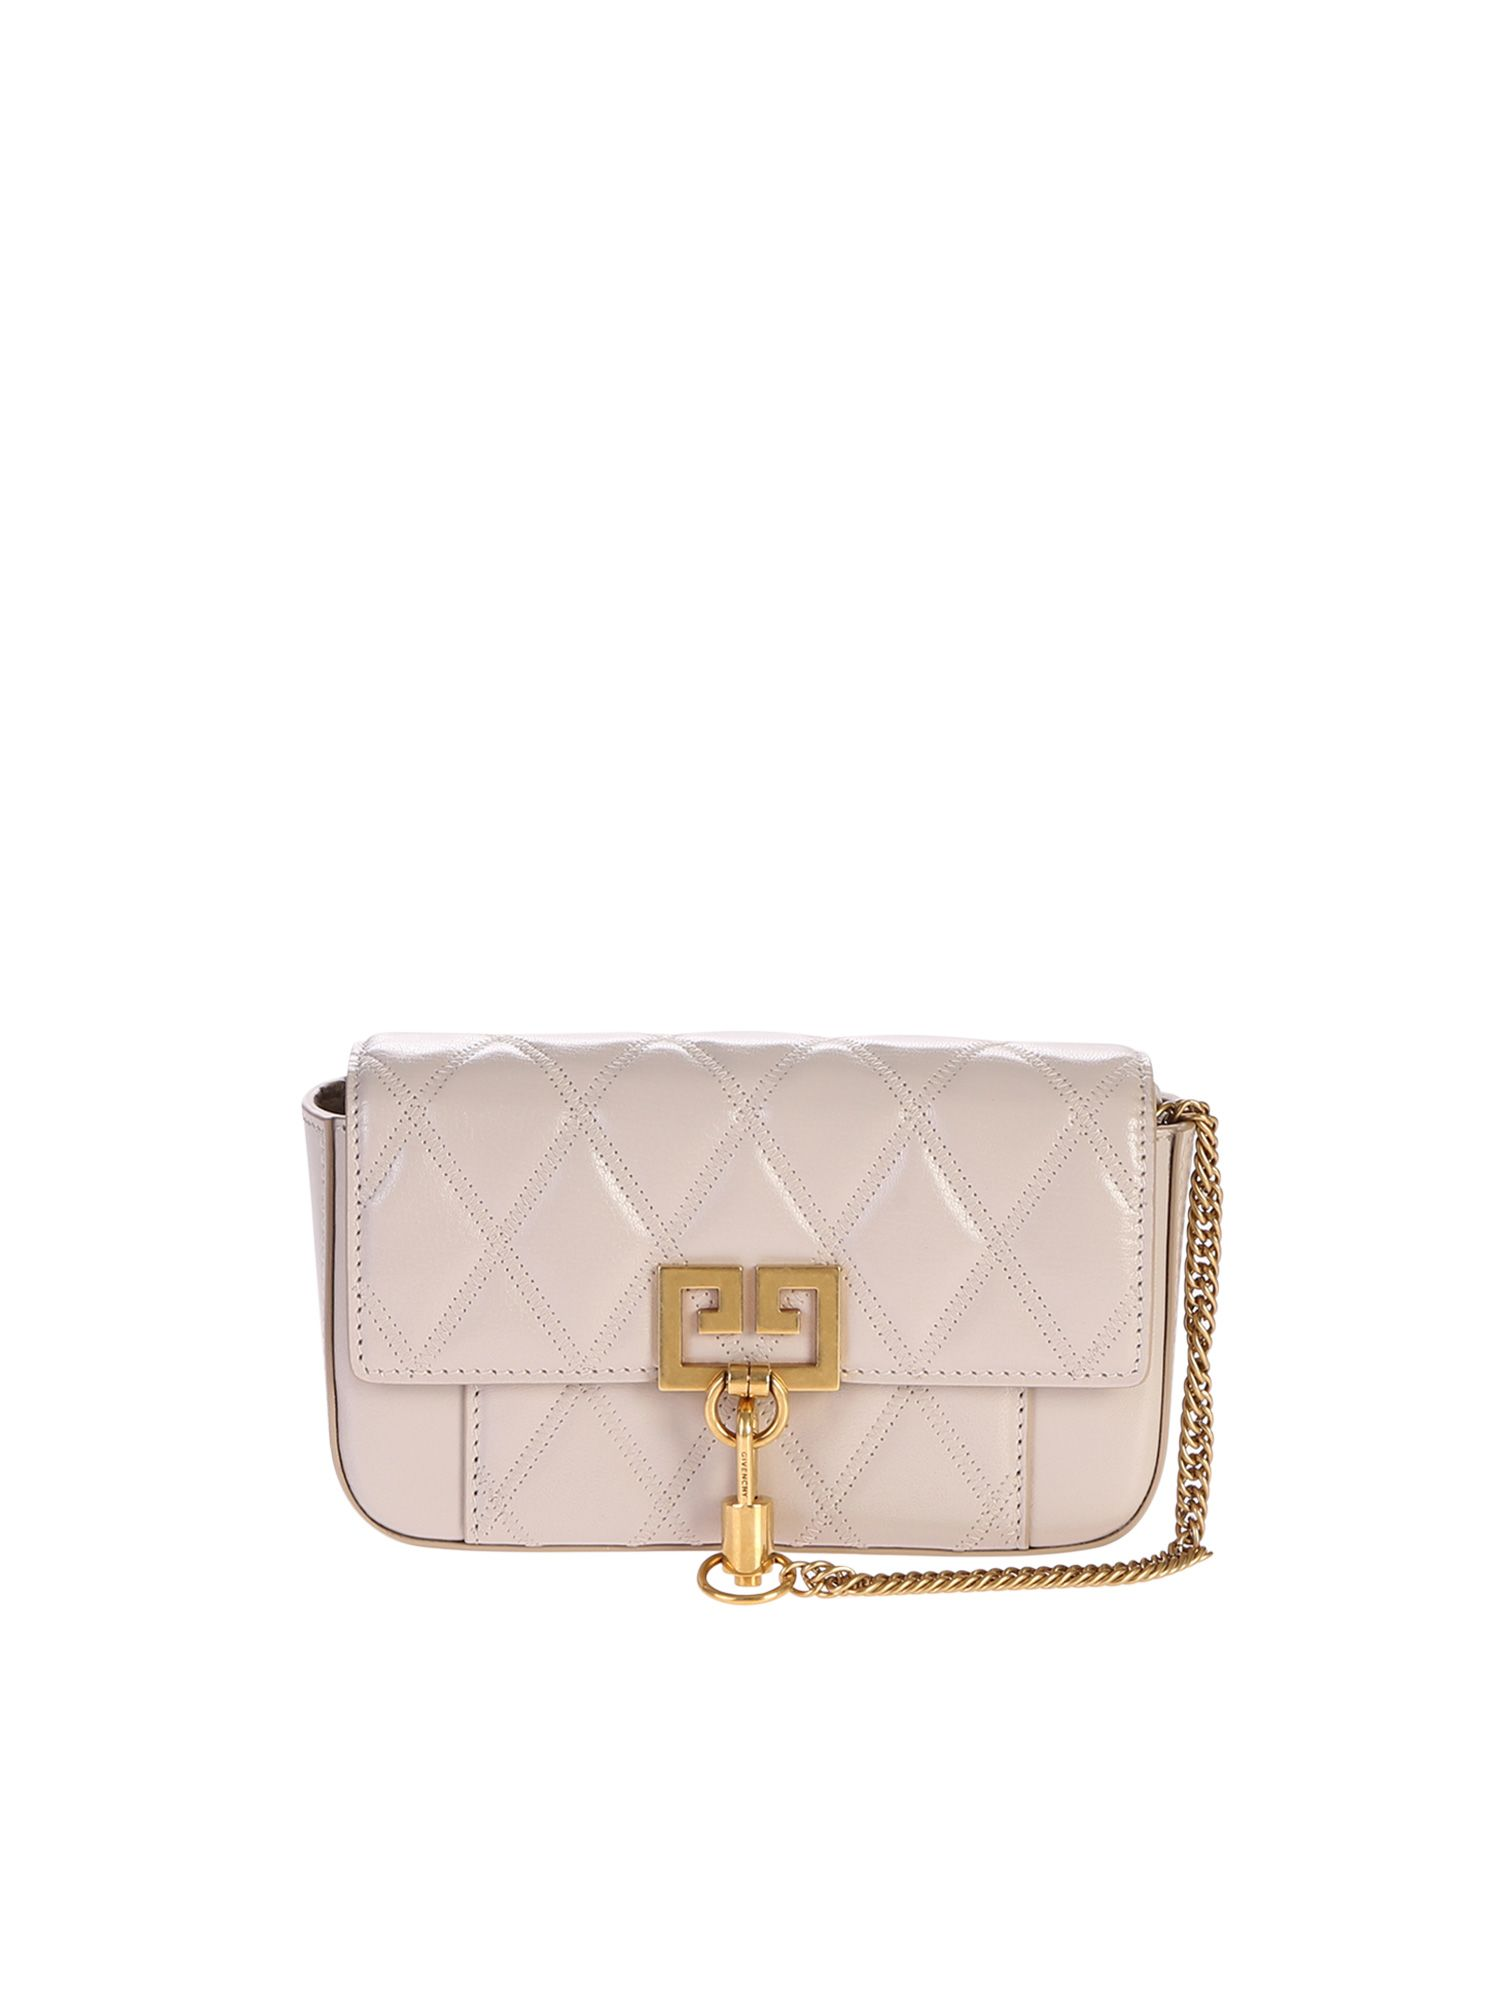 96c9b9e893 Givenchy Small Gv3 Quilted Leather Bag In Natural